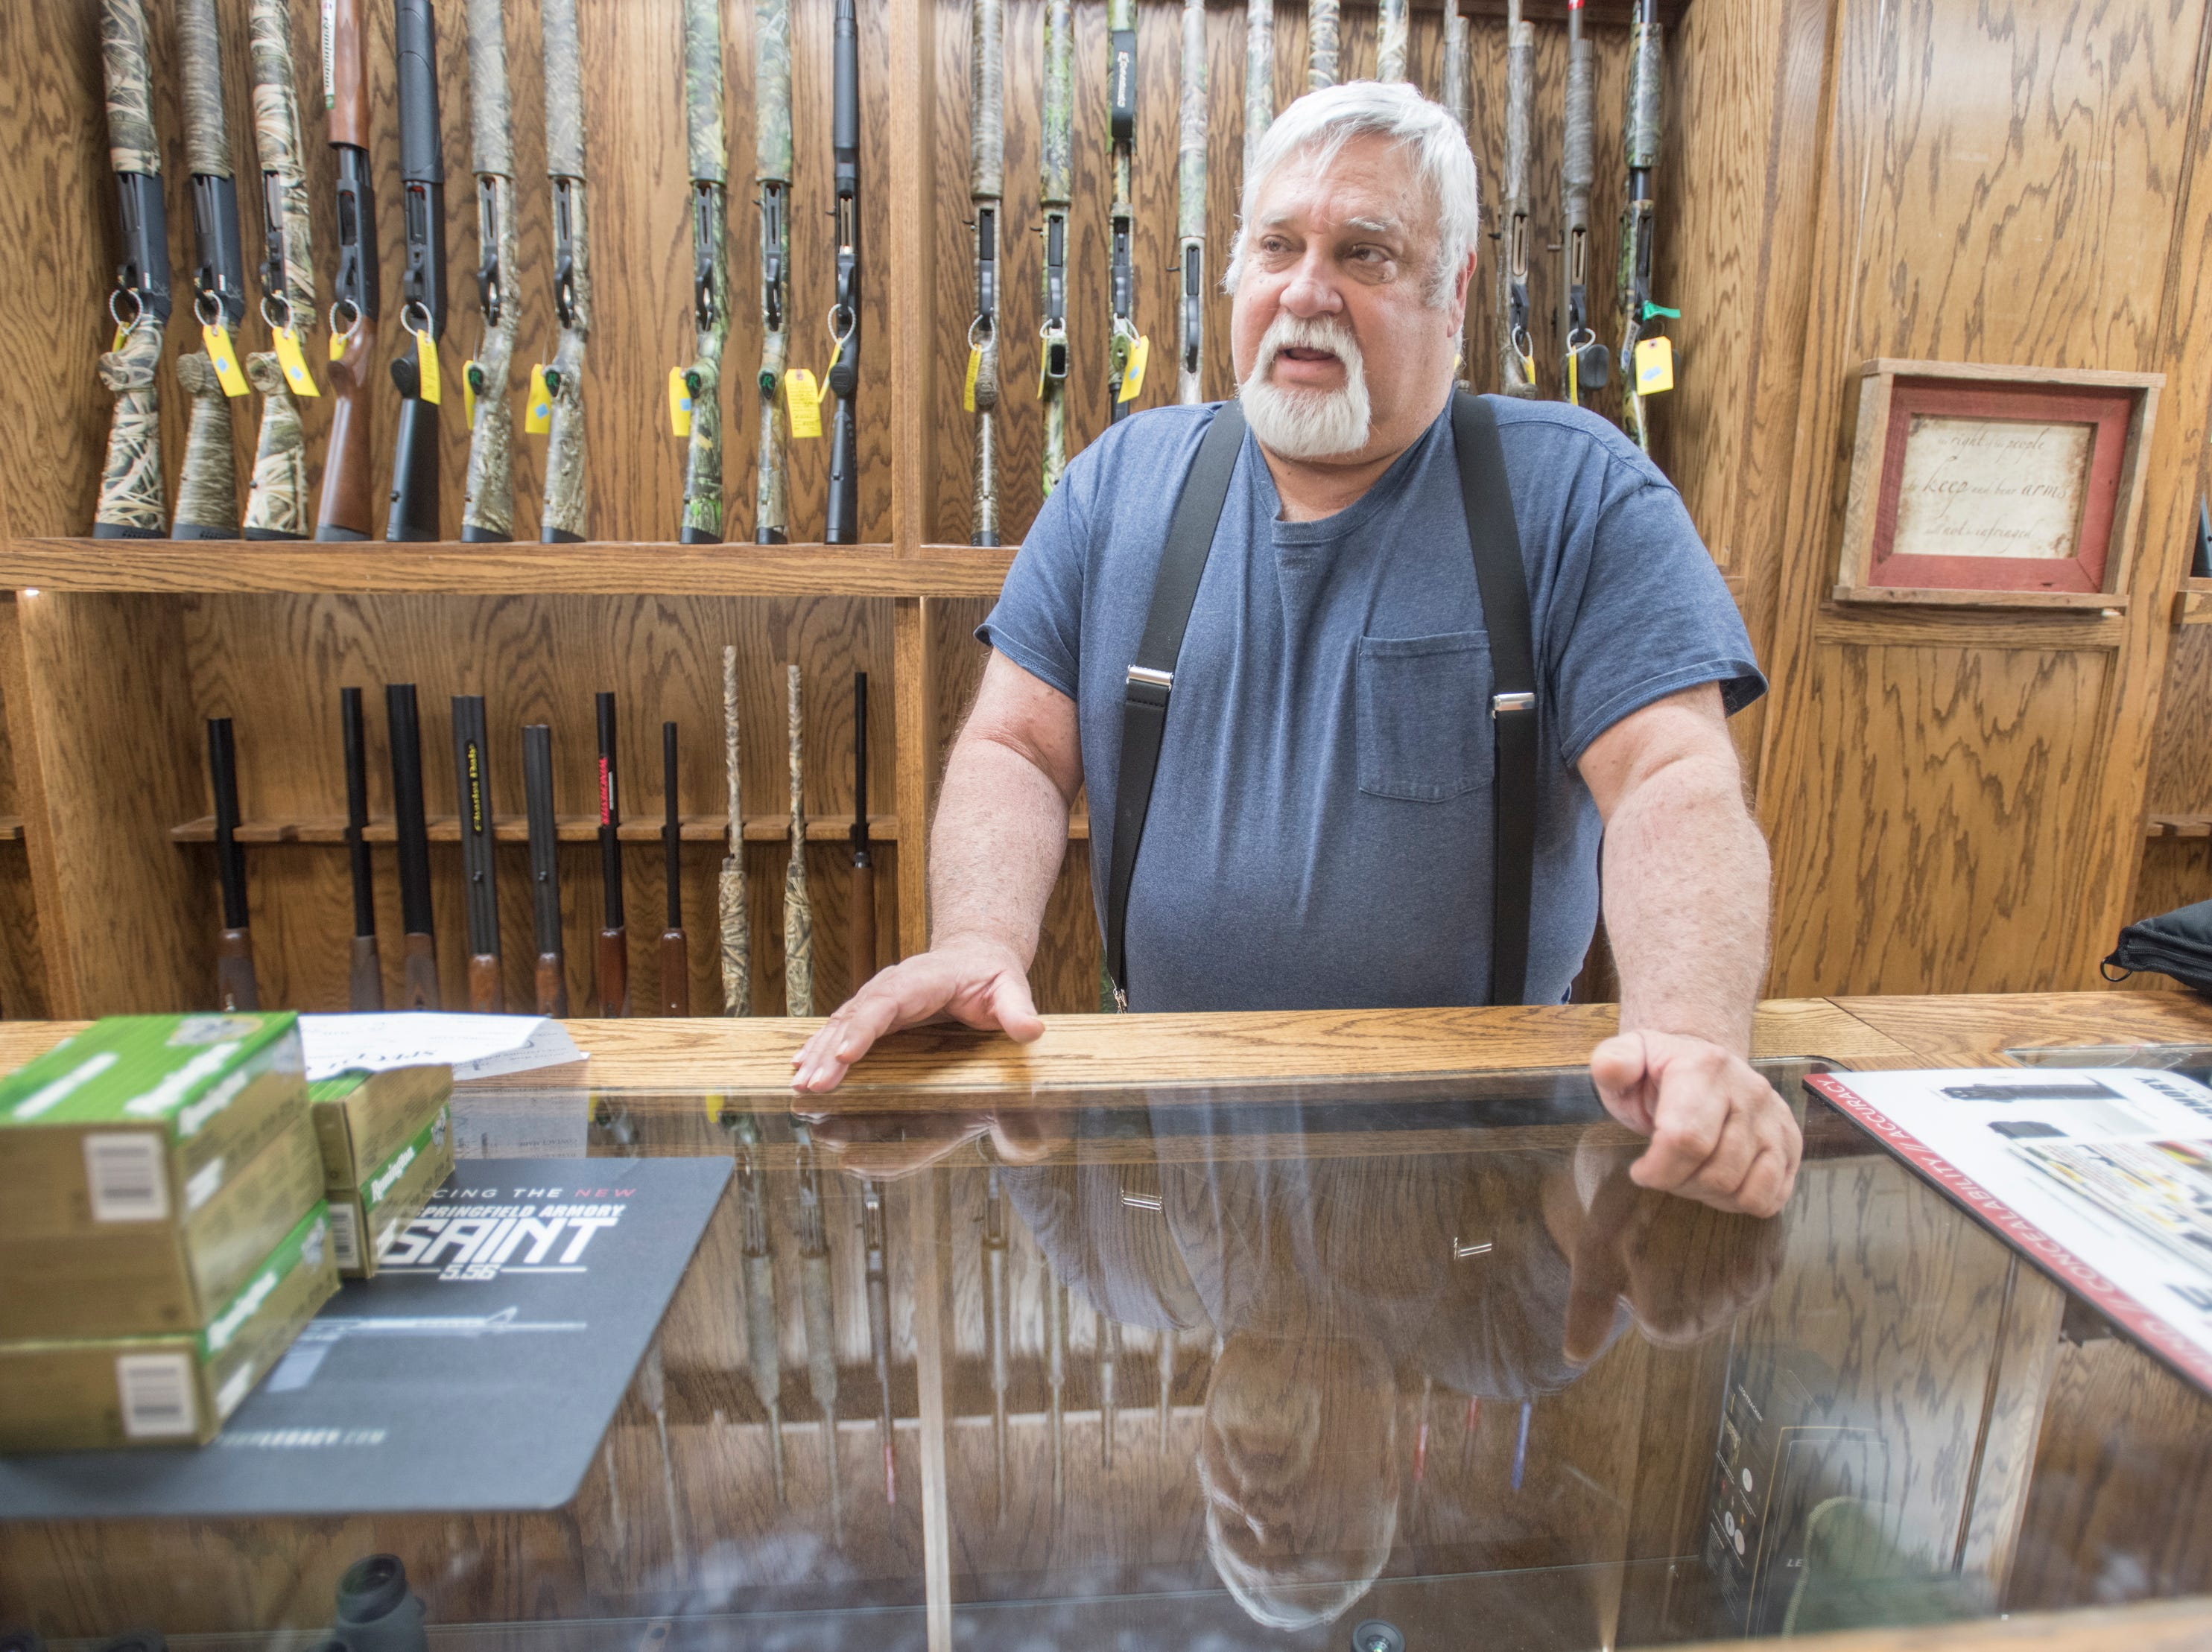 Scott's Outdoors store manager Jim Brown talks about his experience with the March 6th earthquake in Jay, Florida on Wednesday, March 13, 2019.